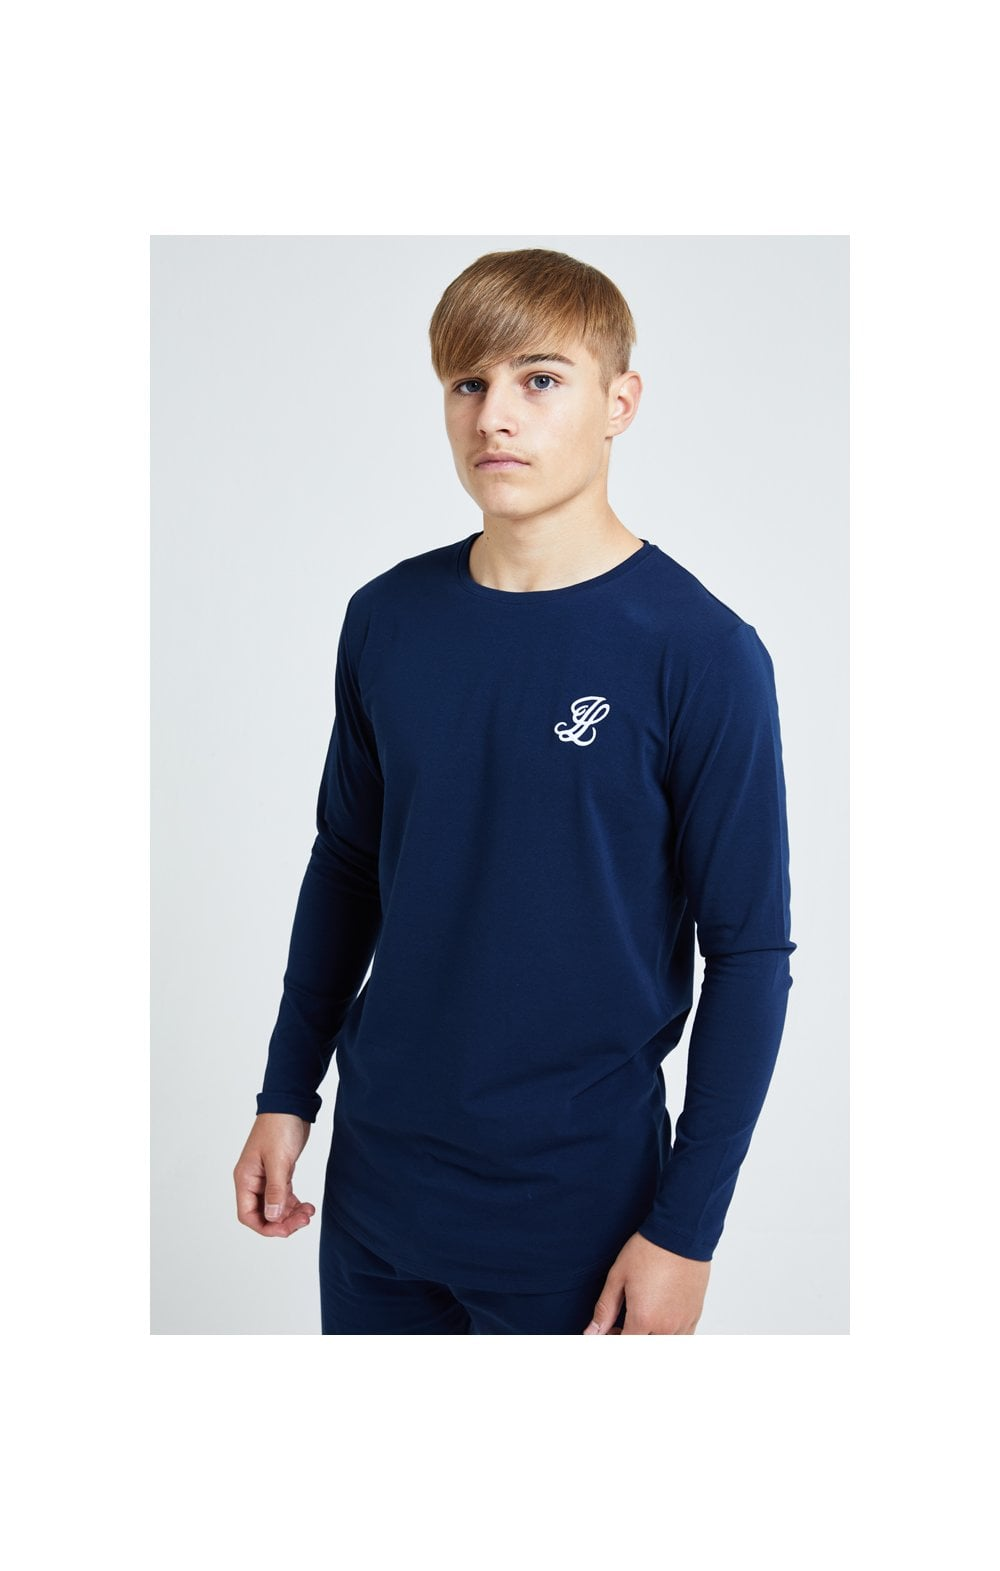 Illusive London L/S Core Tee - Navy